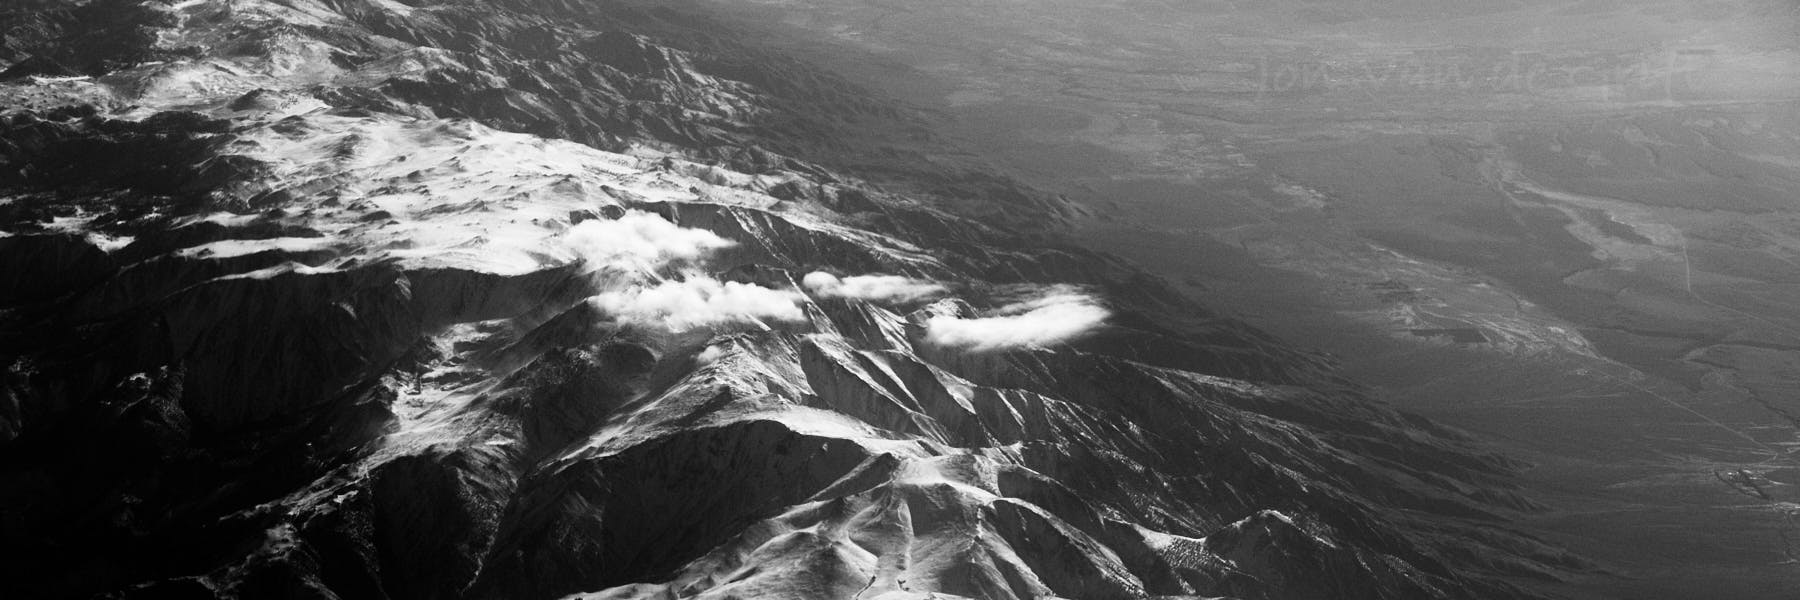 Black and white aerial photograph of clouds and snow along a mountain ridge.